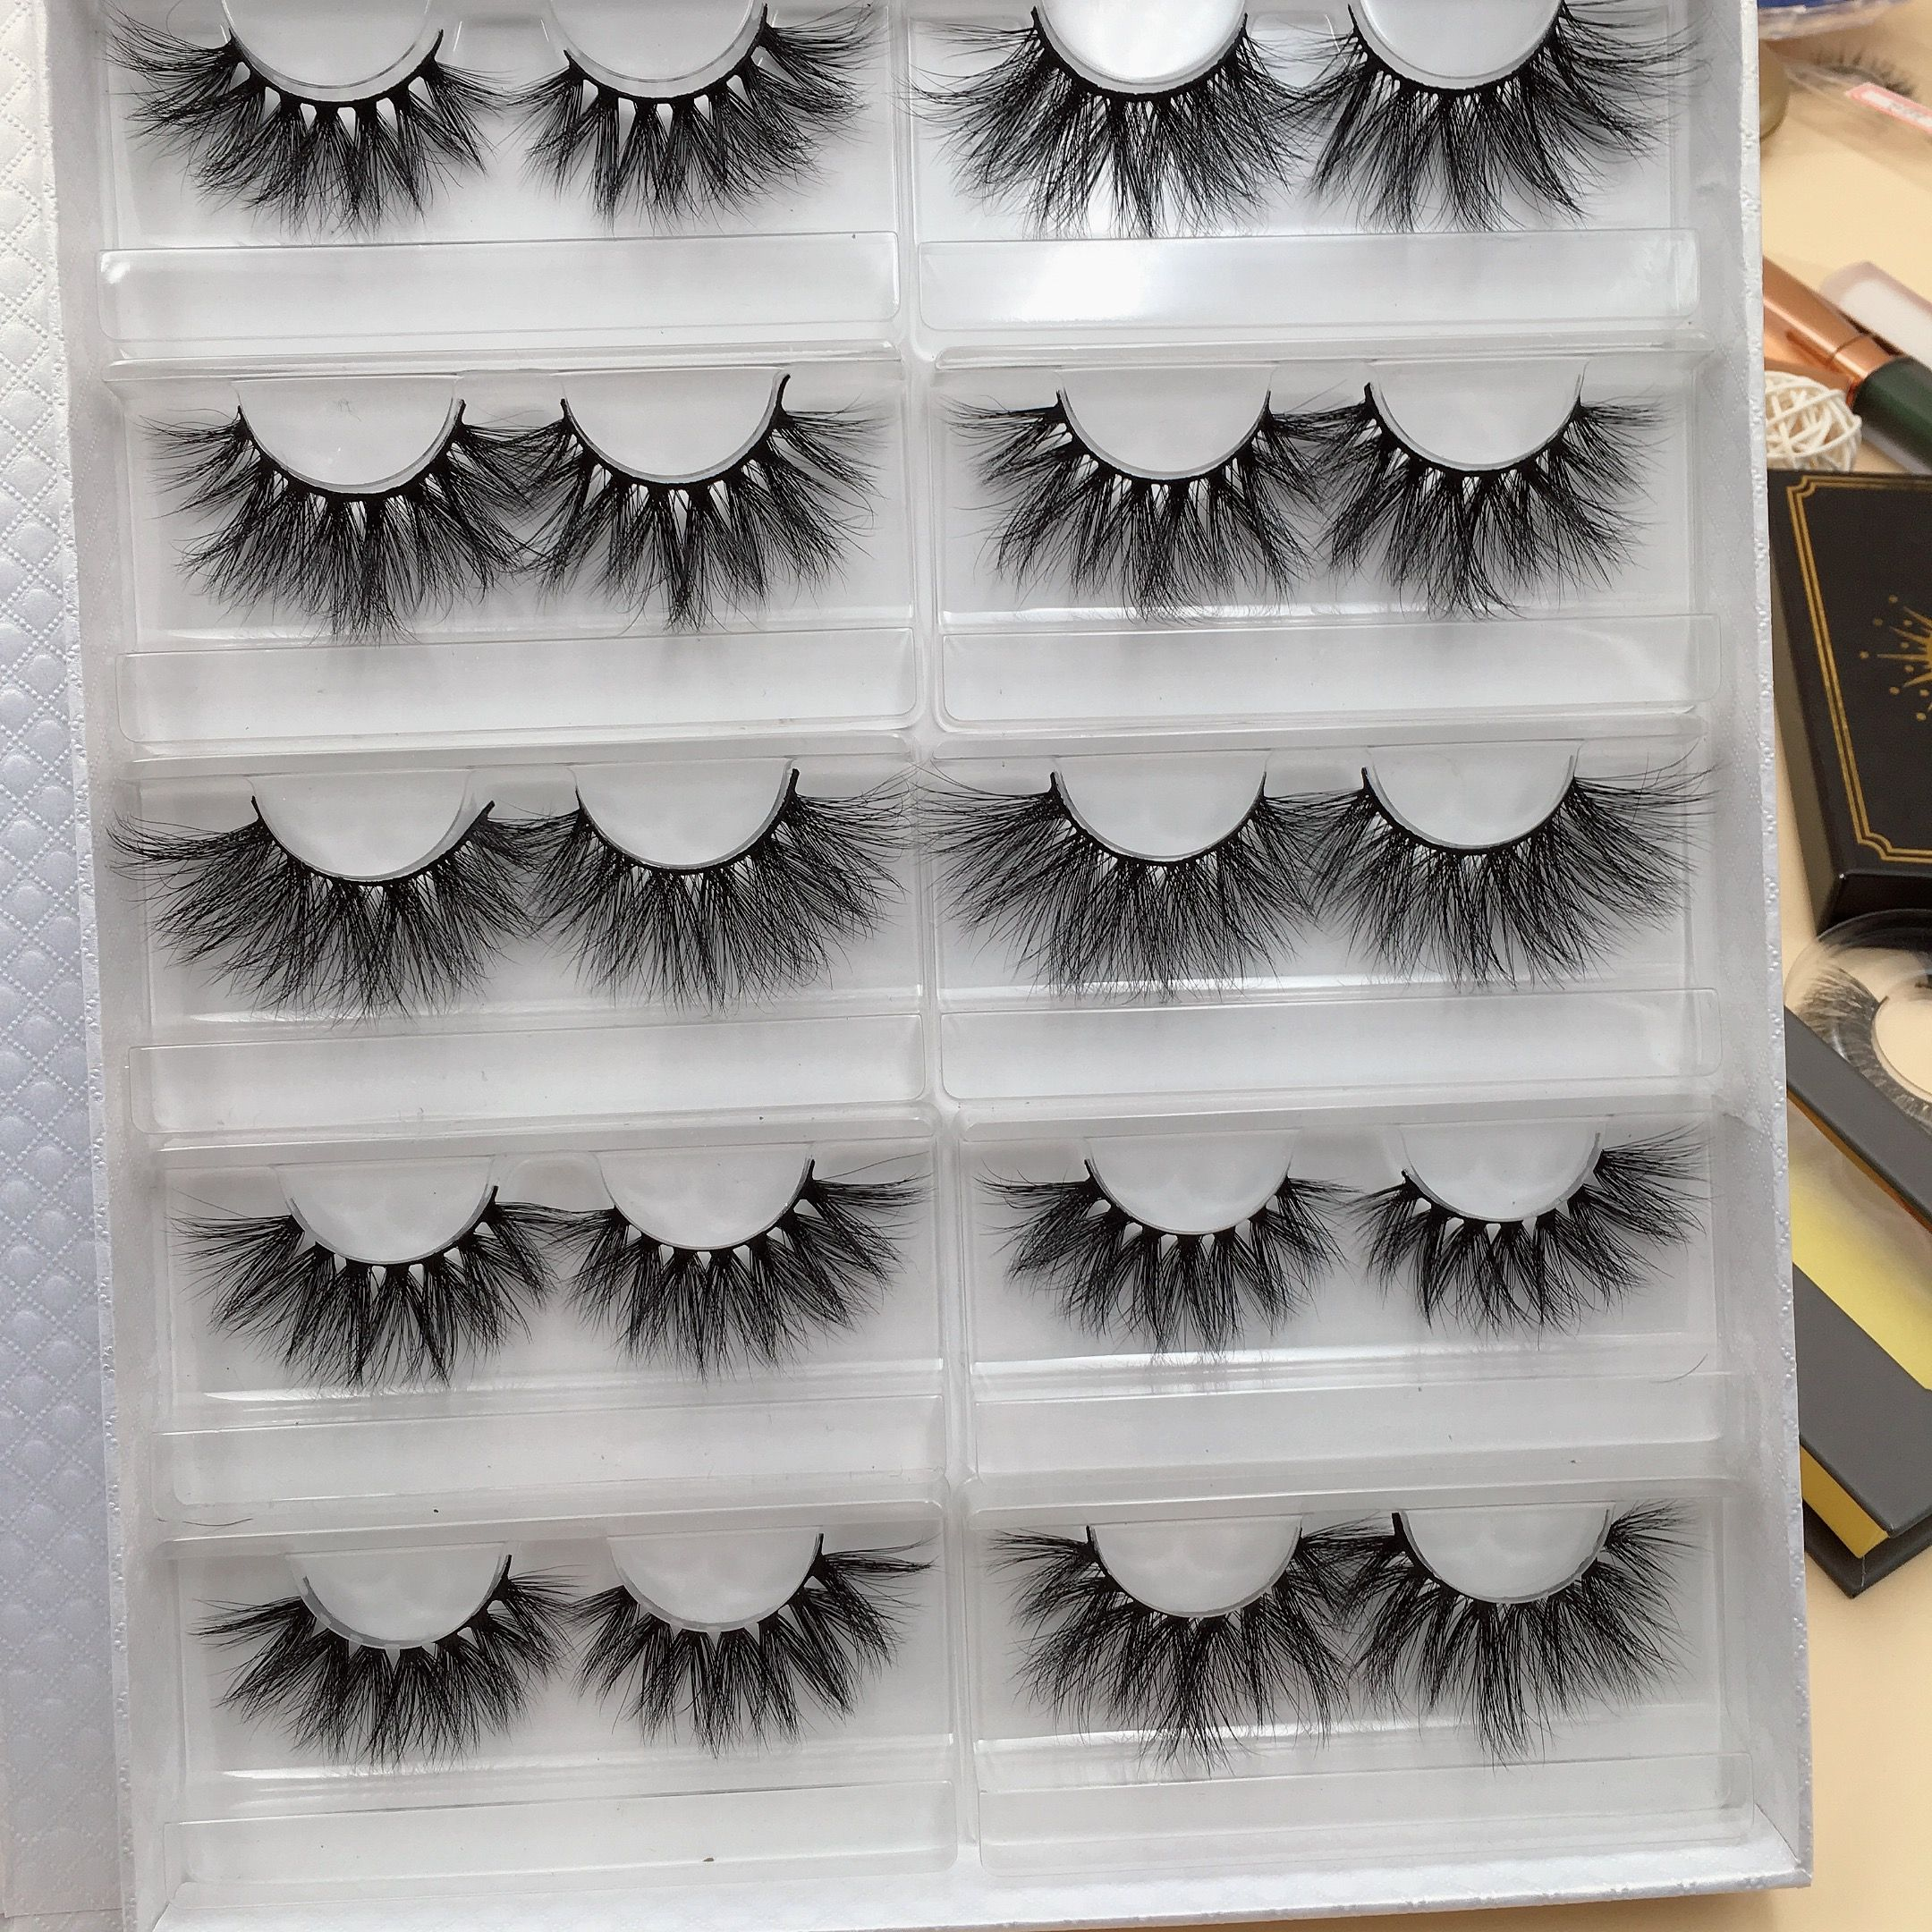 7be02216345 We supply different kind of 3d mink lashes, 3d silk lashes, eyelash  extensions in